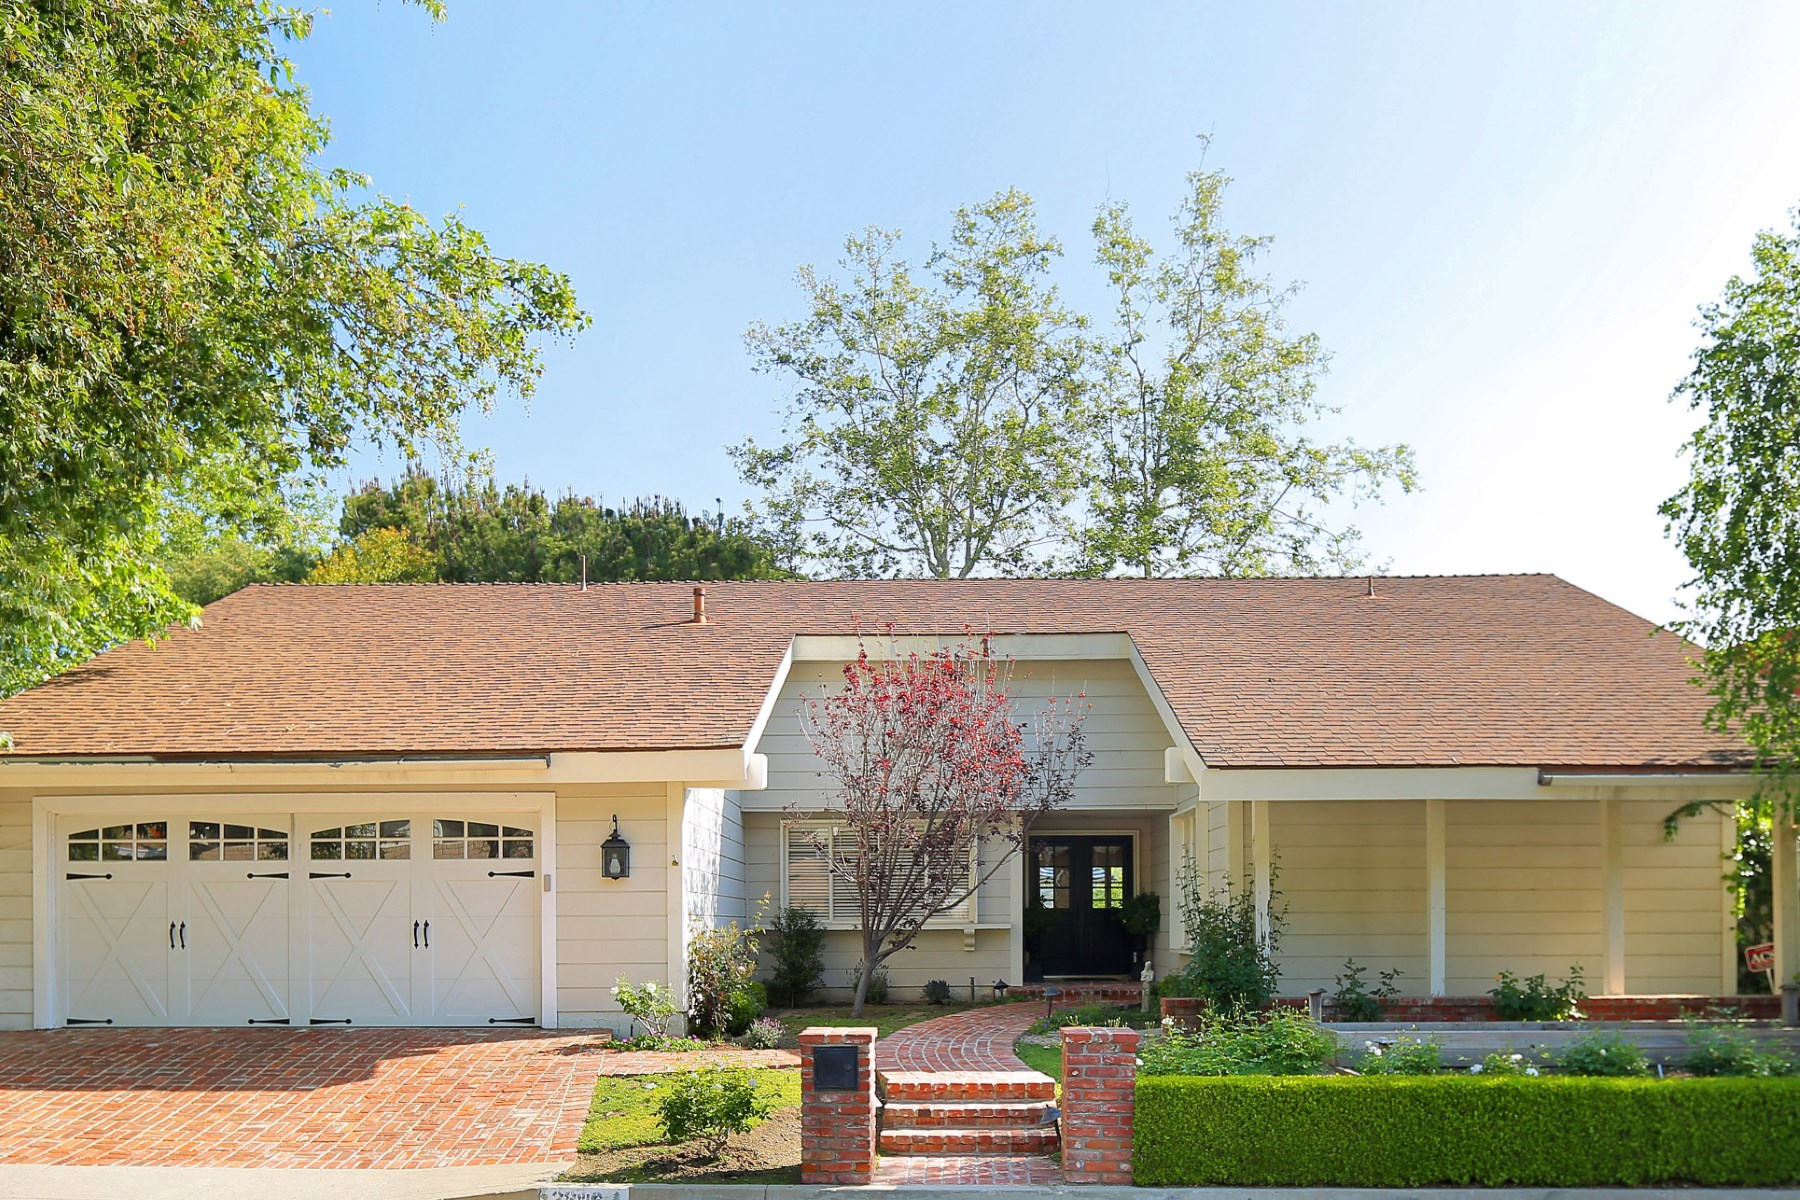 Single Family Home for Sale at Quintessential Ranch Home 2316 Banyan Drive Brentwood, Los Angeles, California, 90049 United States